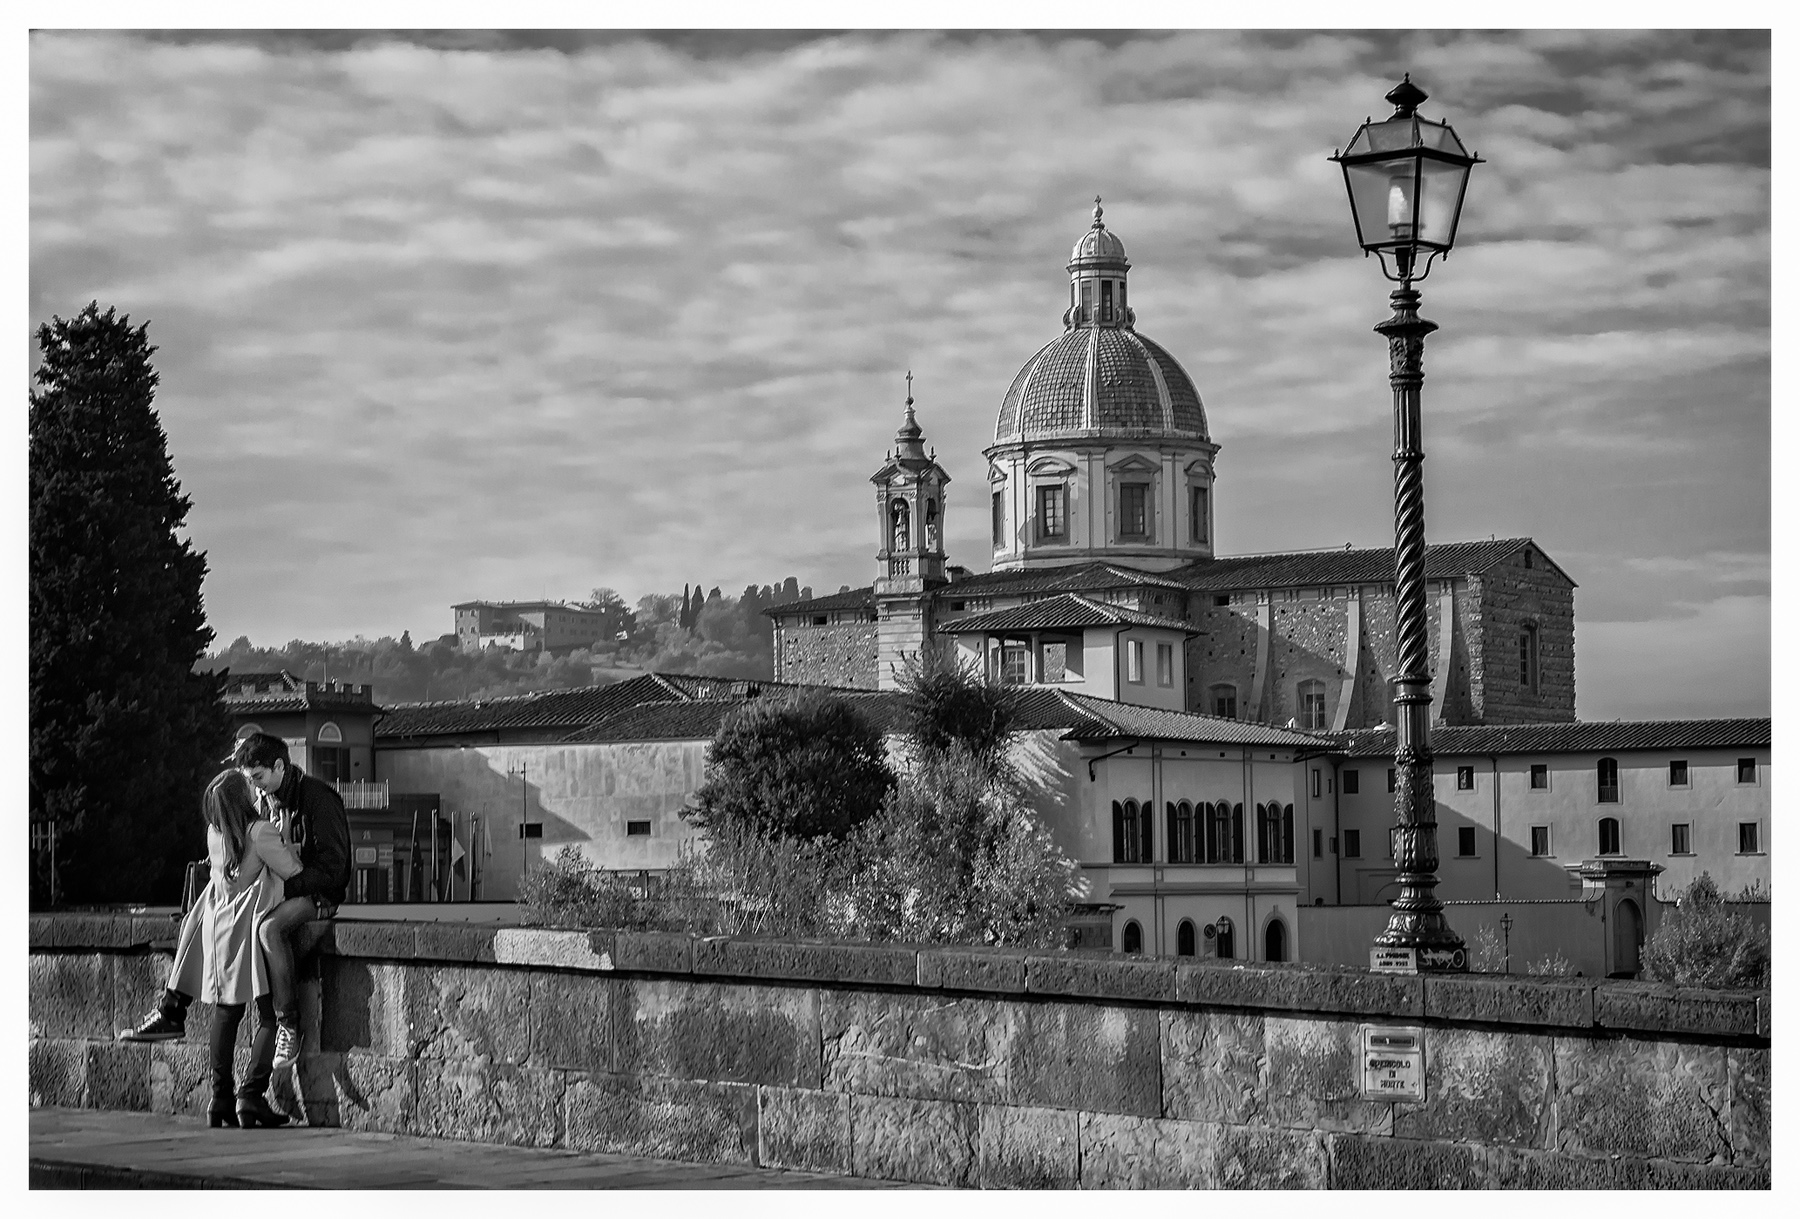 From Florence - part 8 - Black&Whites